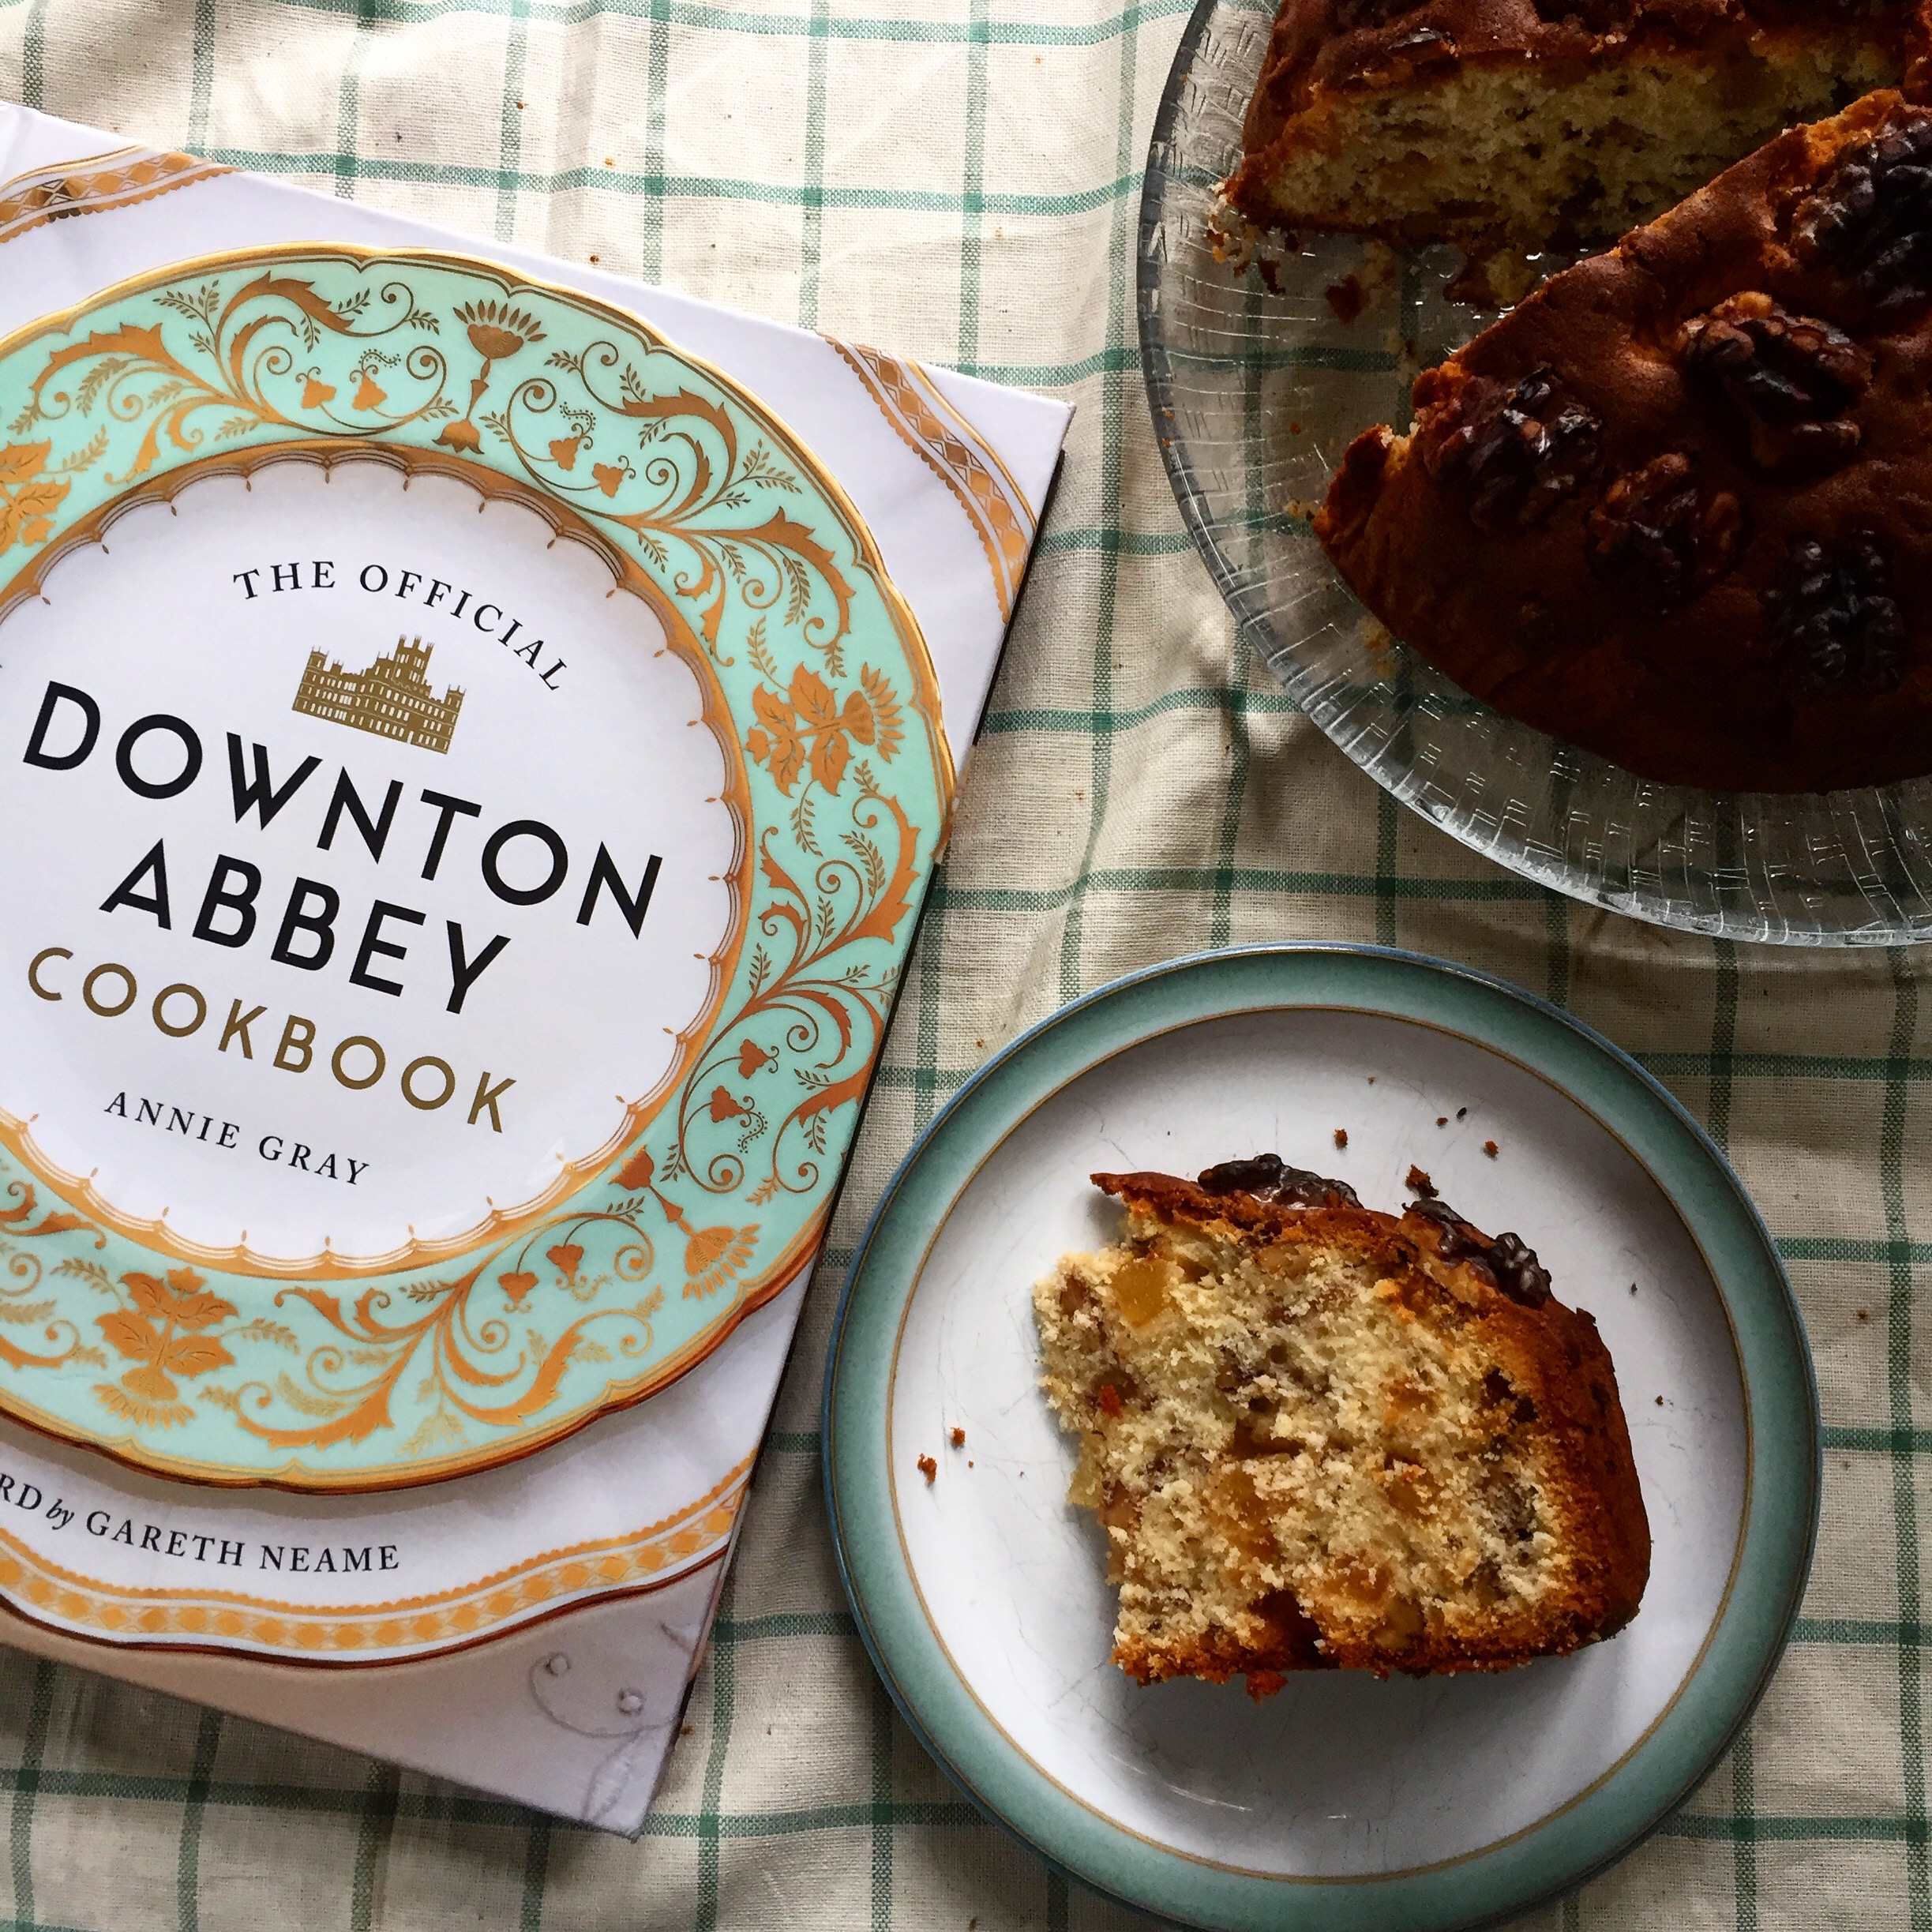 Downton Abbey Cookbook by Annie Gray (Book Review)